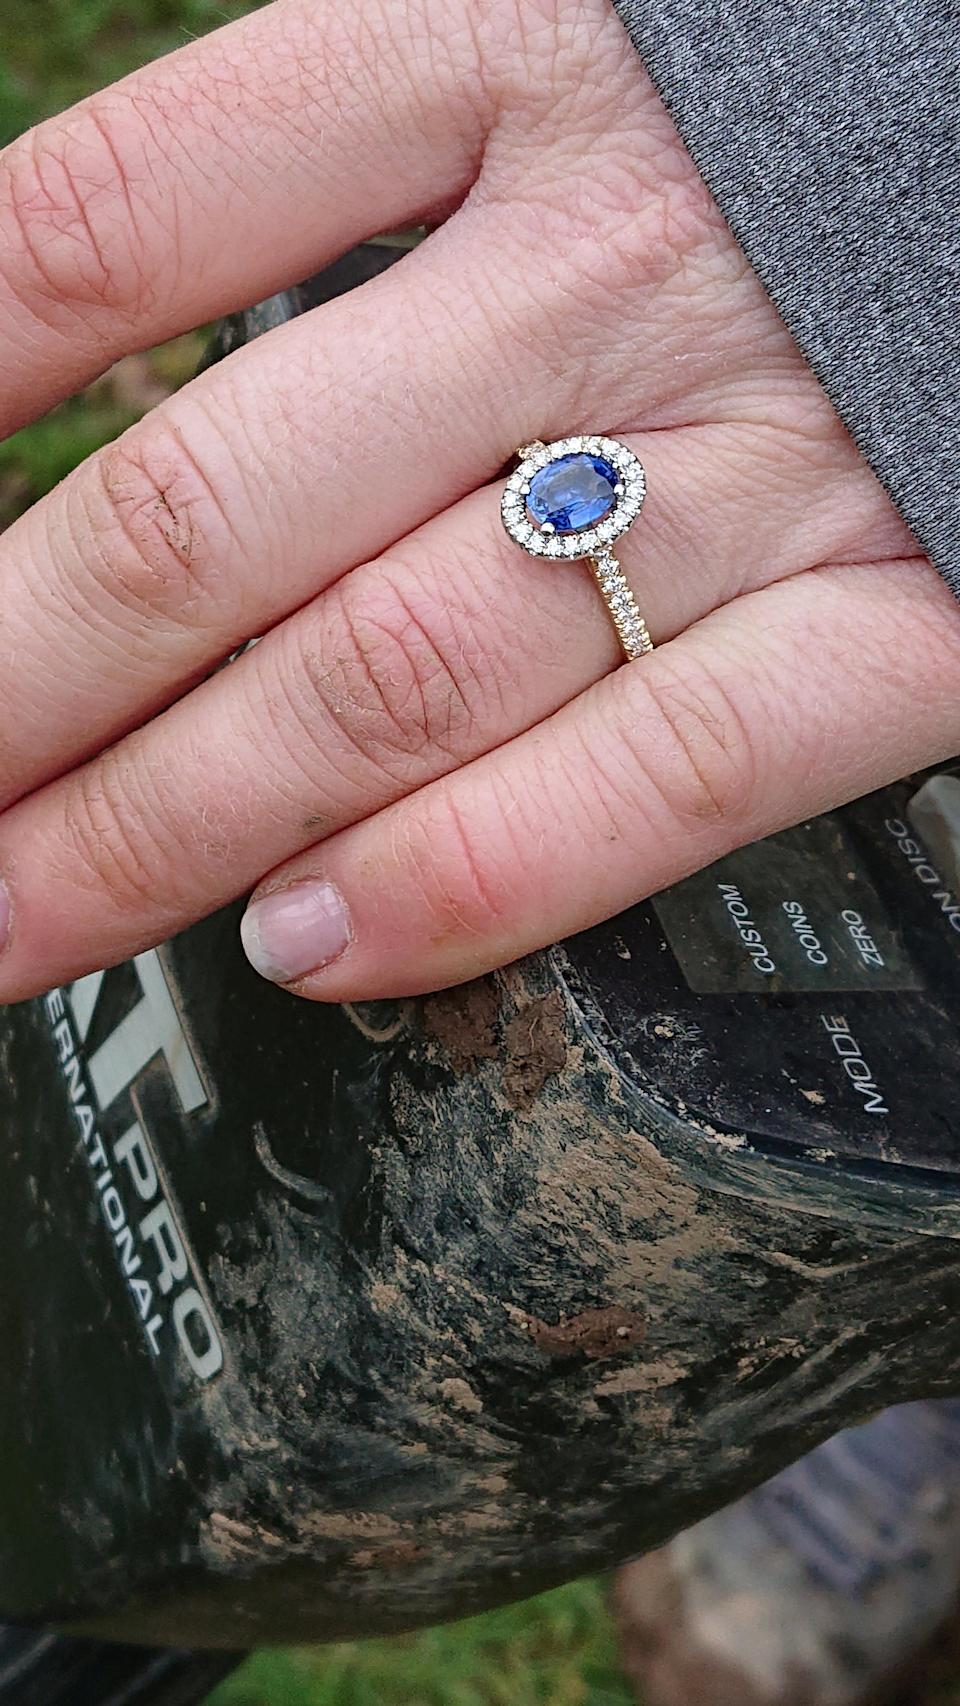 The £2K Sapphire and diamond ring [Photo: SWNS]